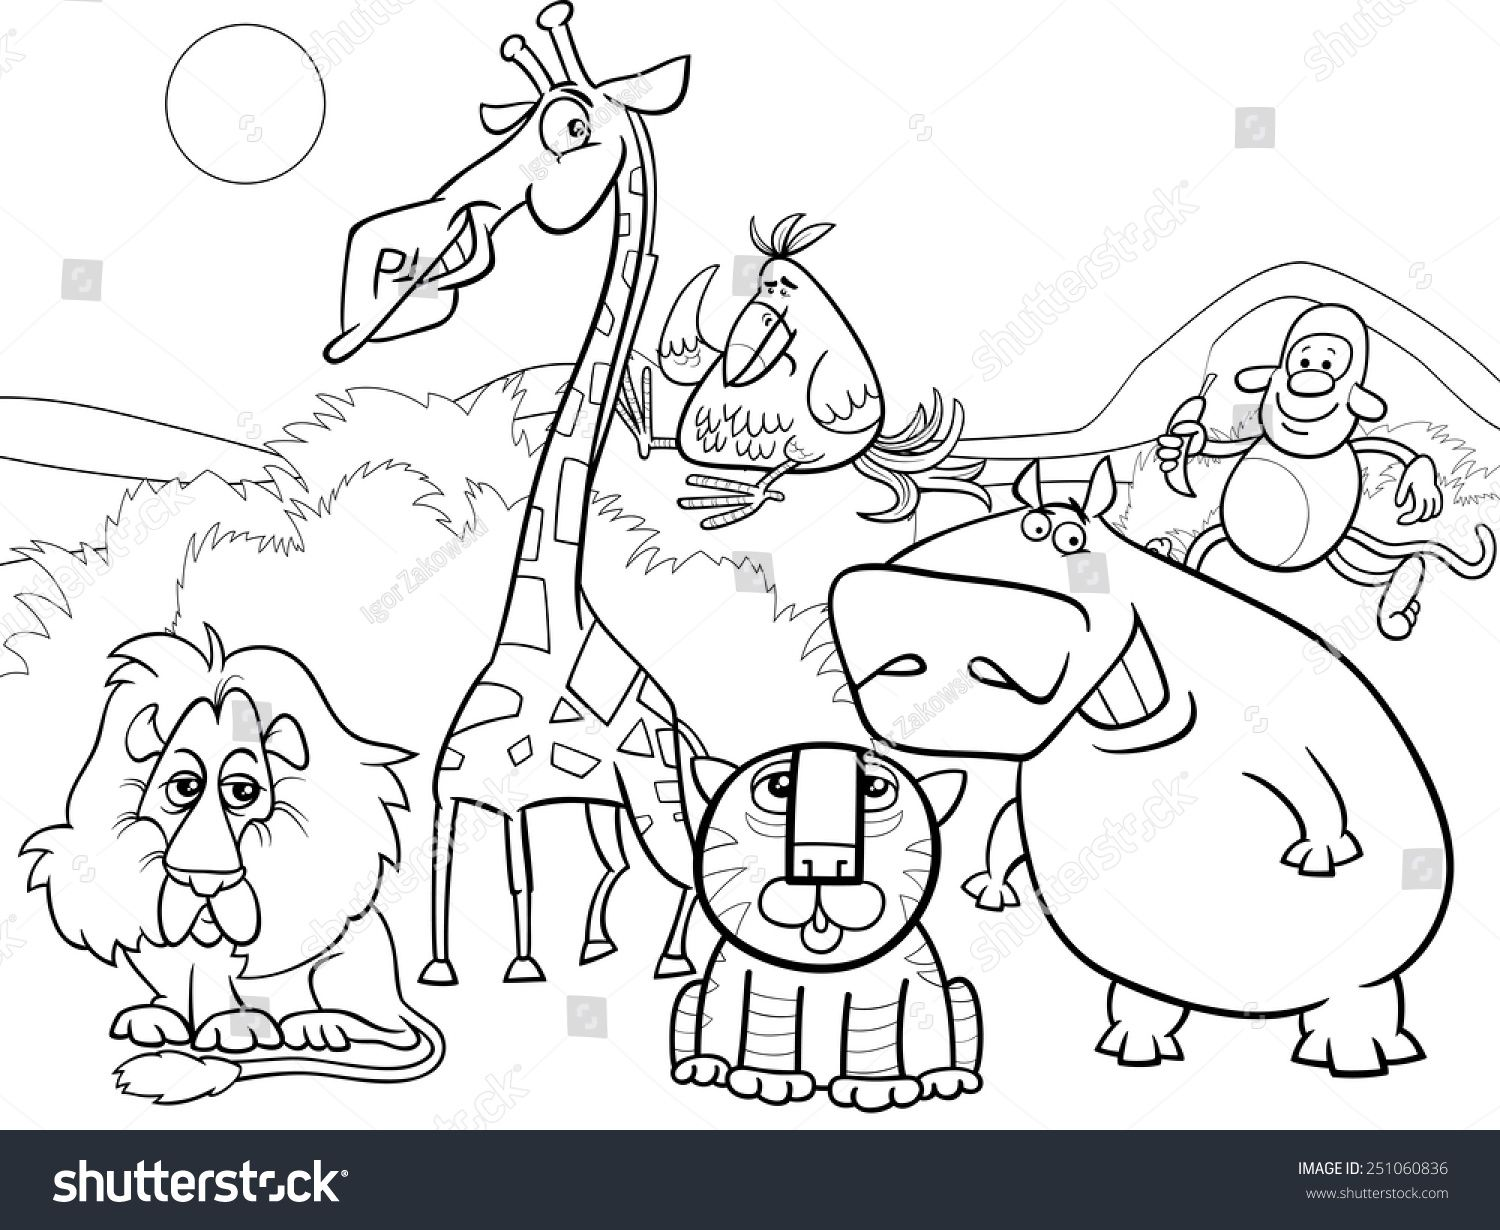 Black And White Cartoon Vector Illustration Of Scene With Wild Safari Animals Characters Group Animal Coloring Books Animal Coloring Pages Lion Coloring Pages